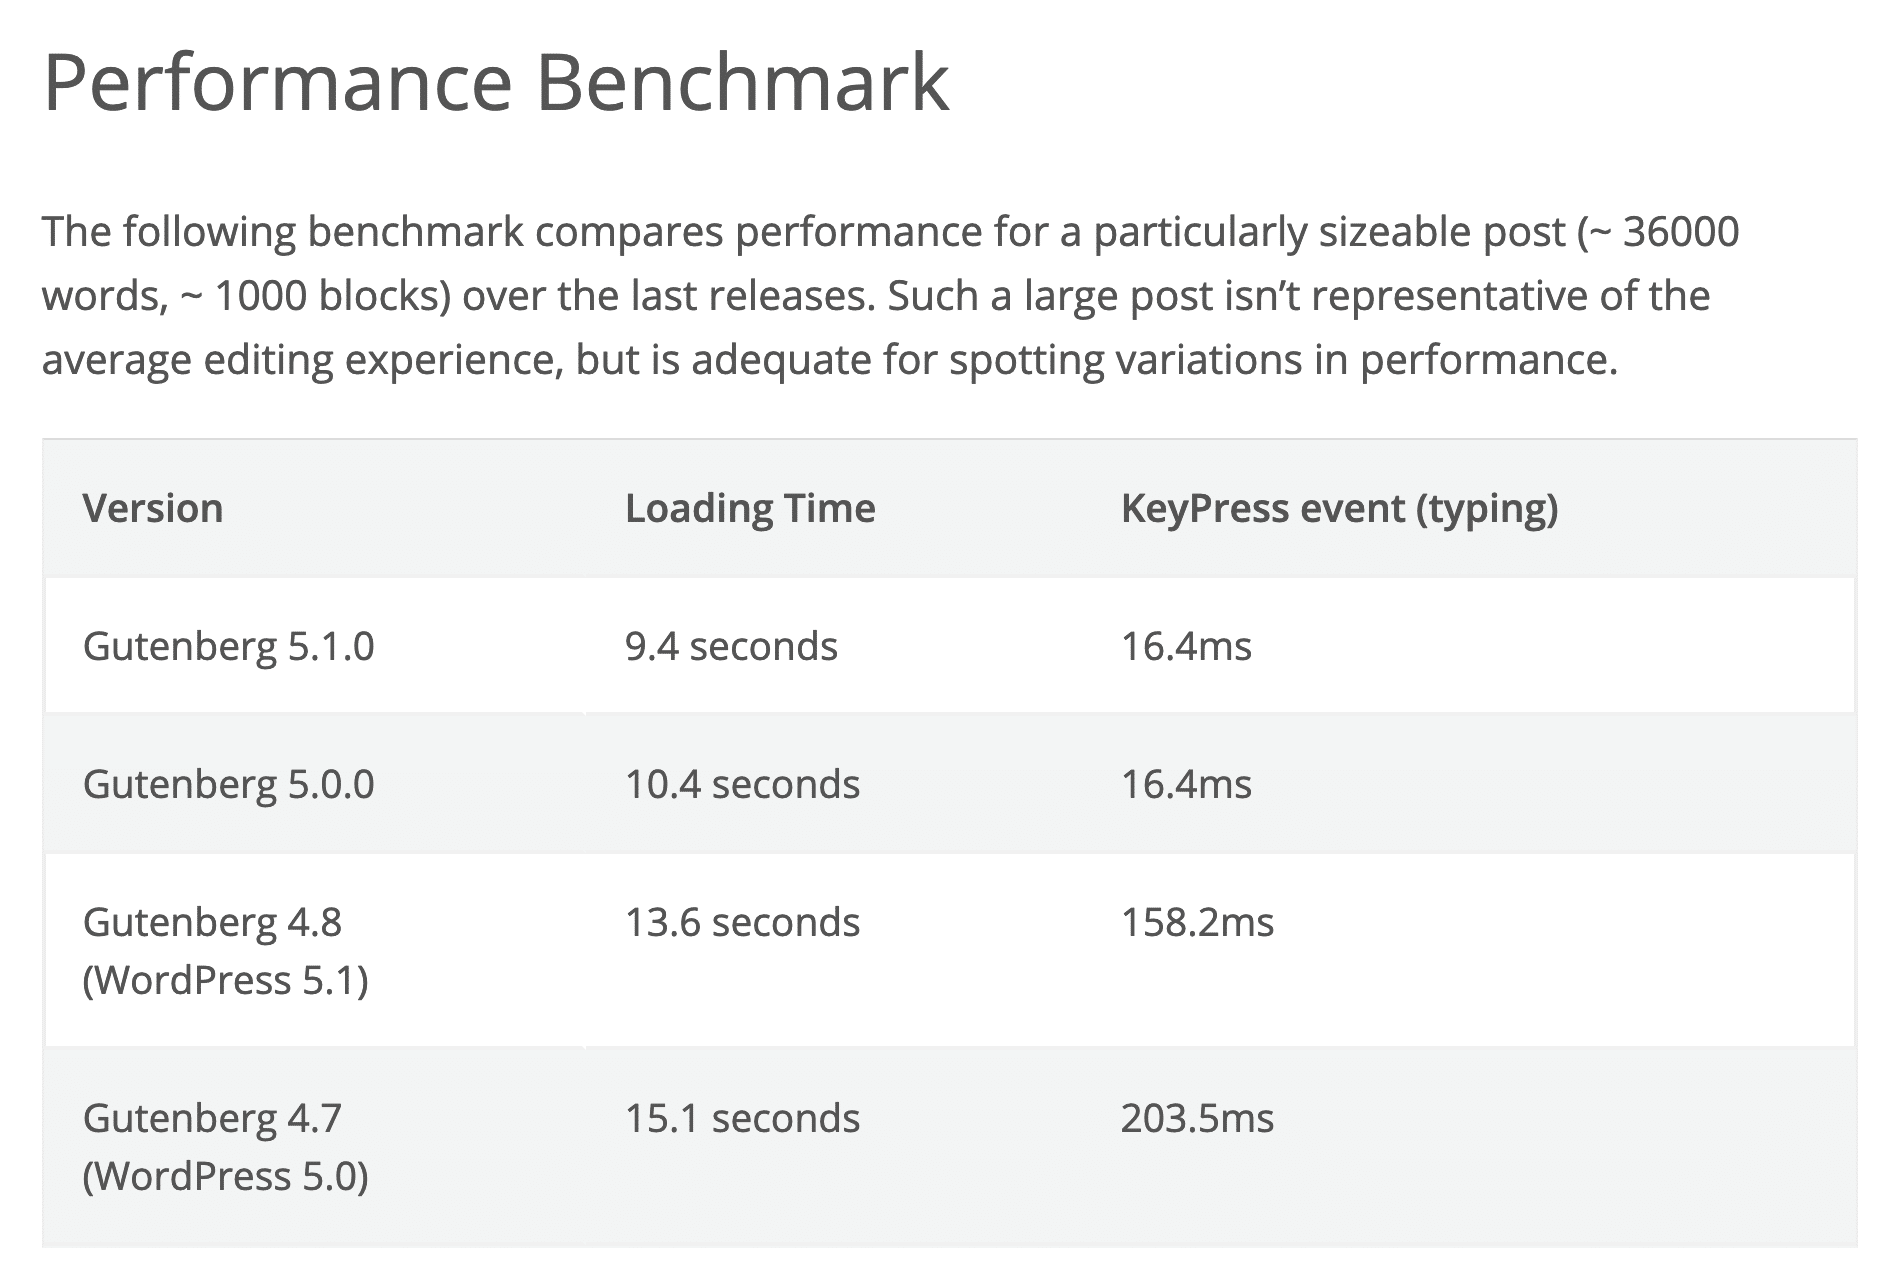 Gutenberg performance benchmarks for different versions